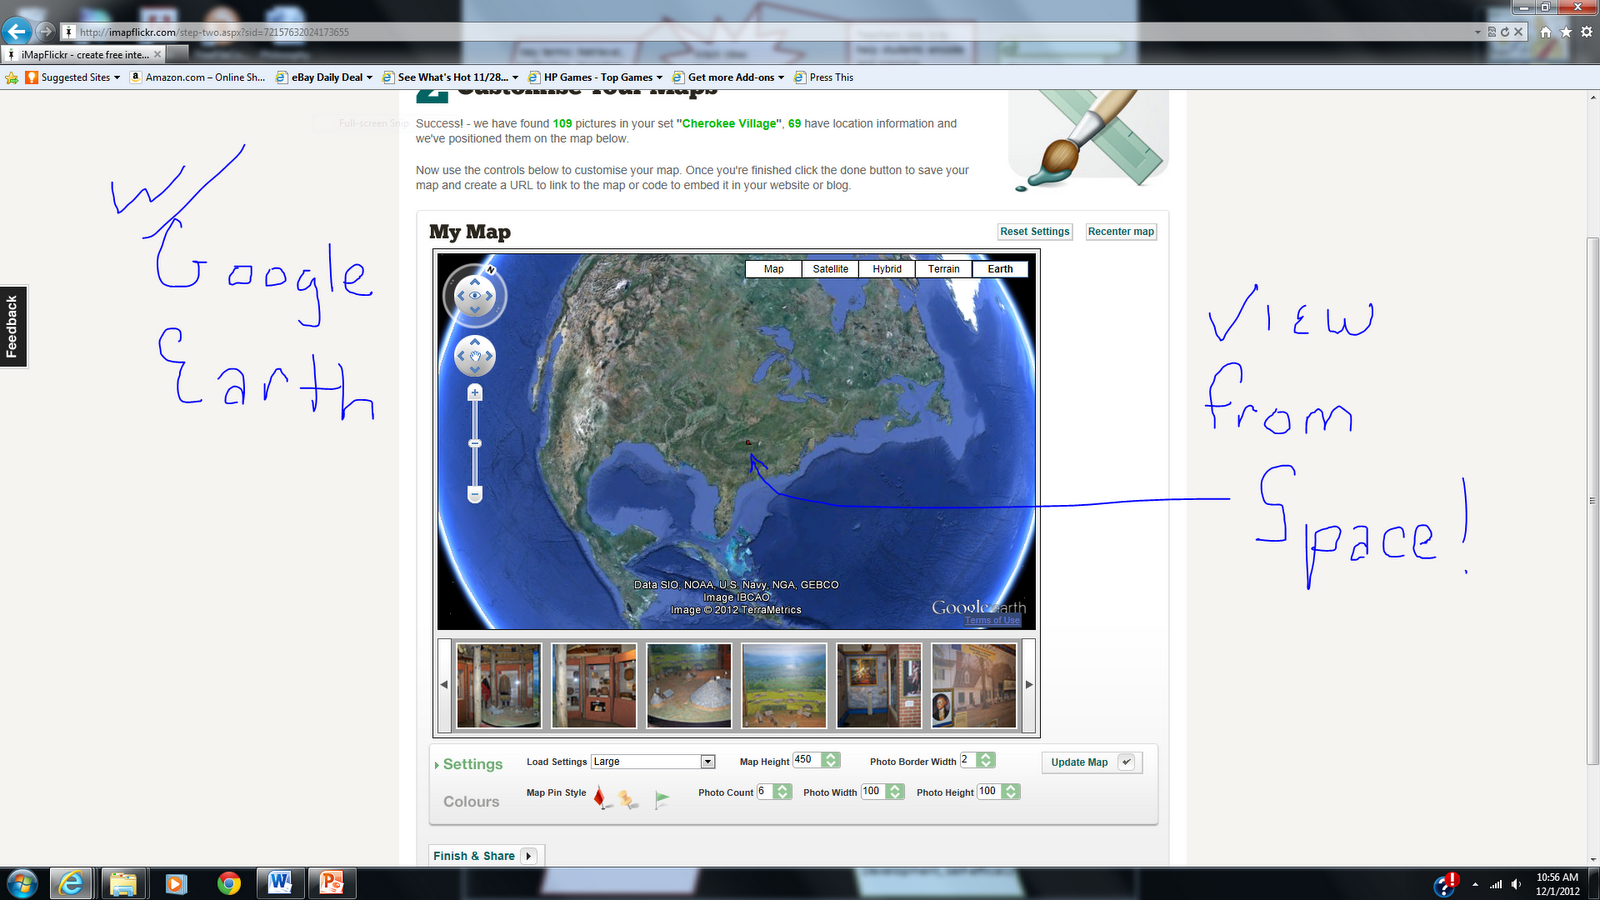 now you can view your locations in a variety of ways